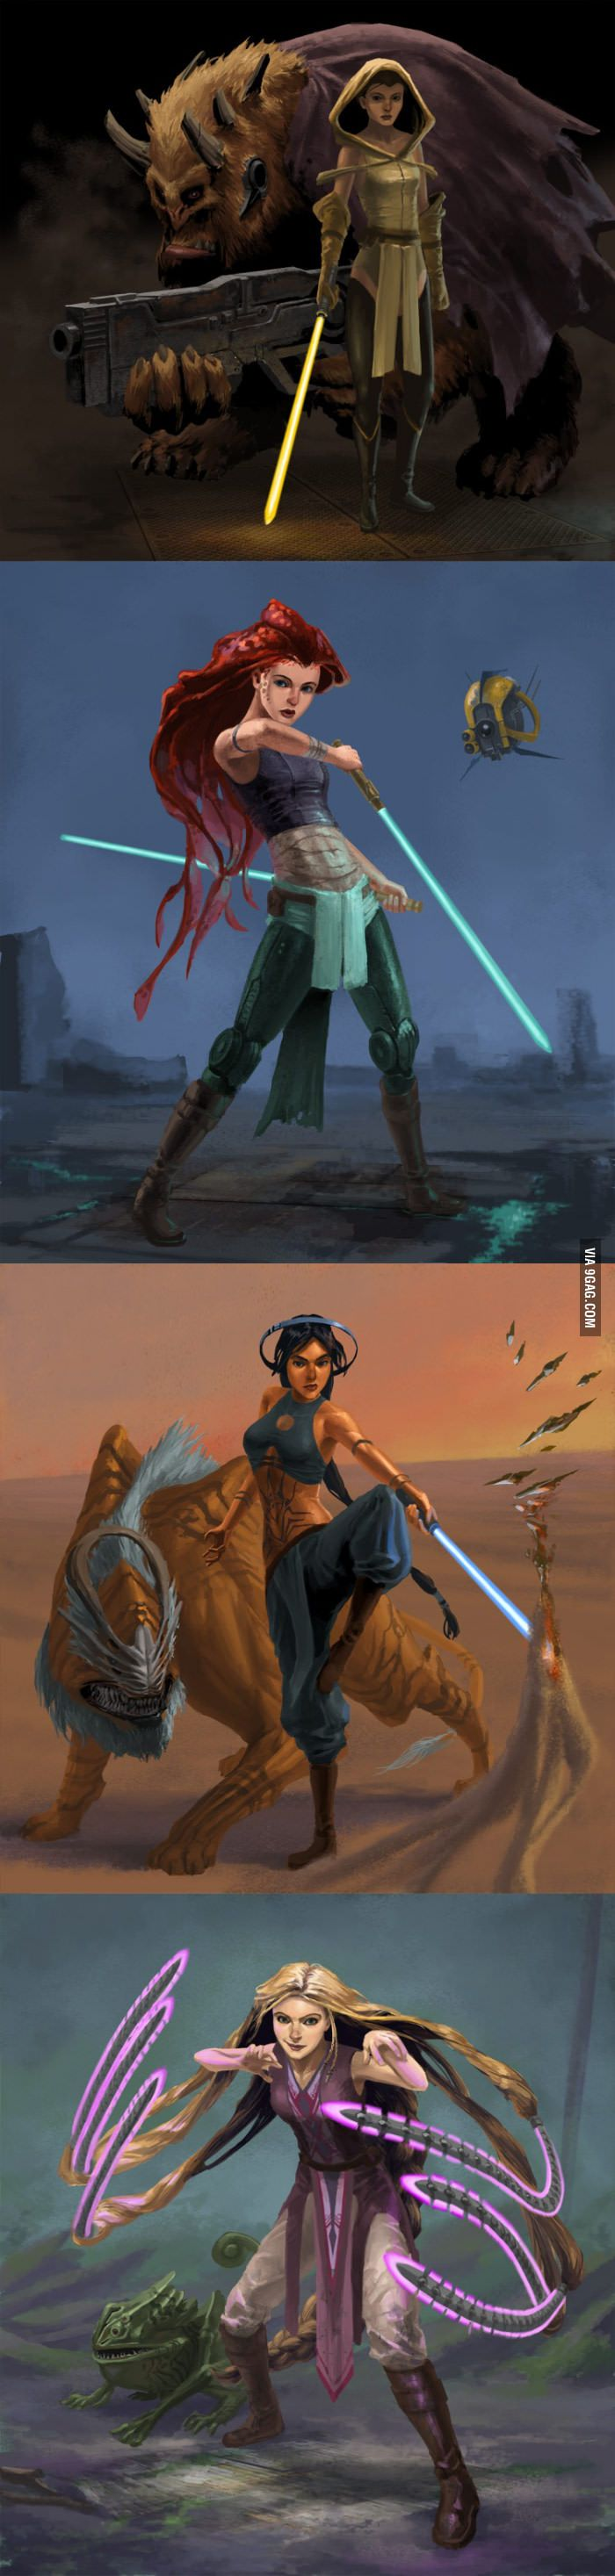 4 Disney Princess Jedi by Phill Berry - 9GAG